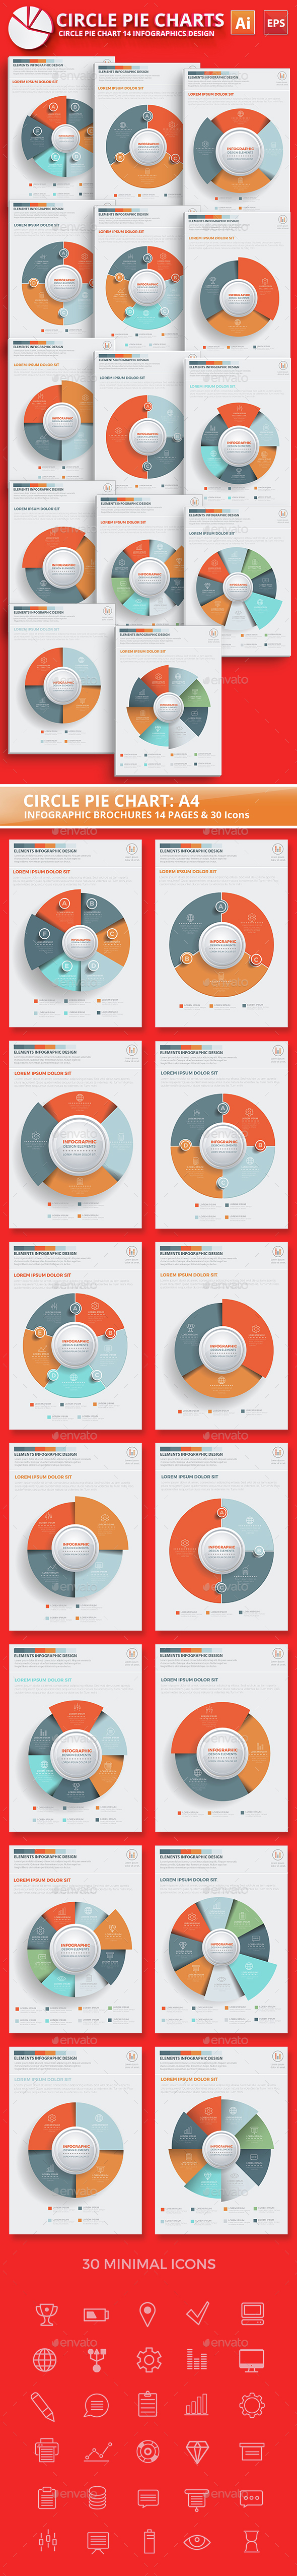 Circle Pie Chart Infographic Elements Design - Infographics